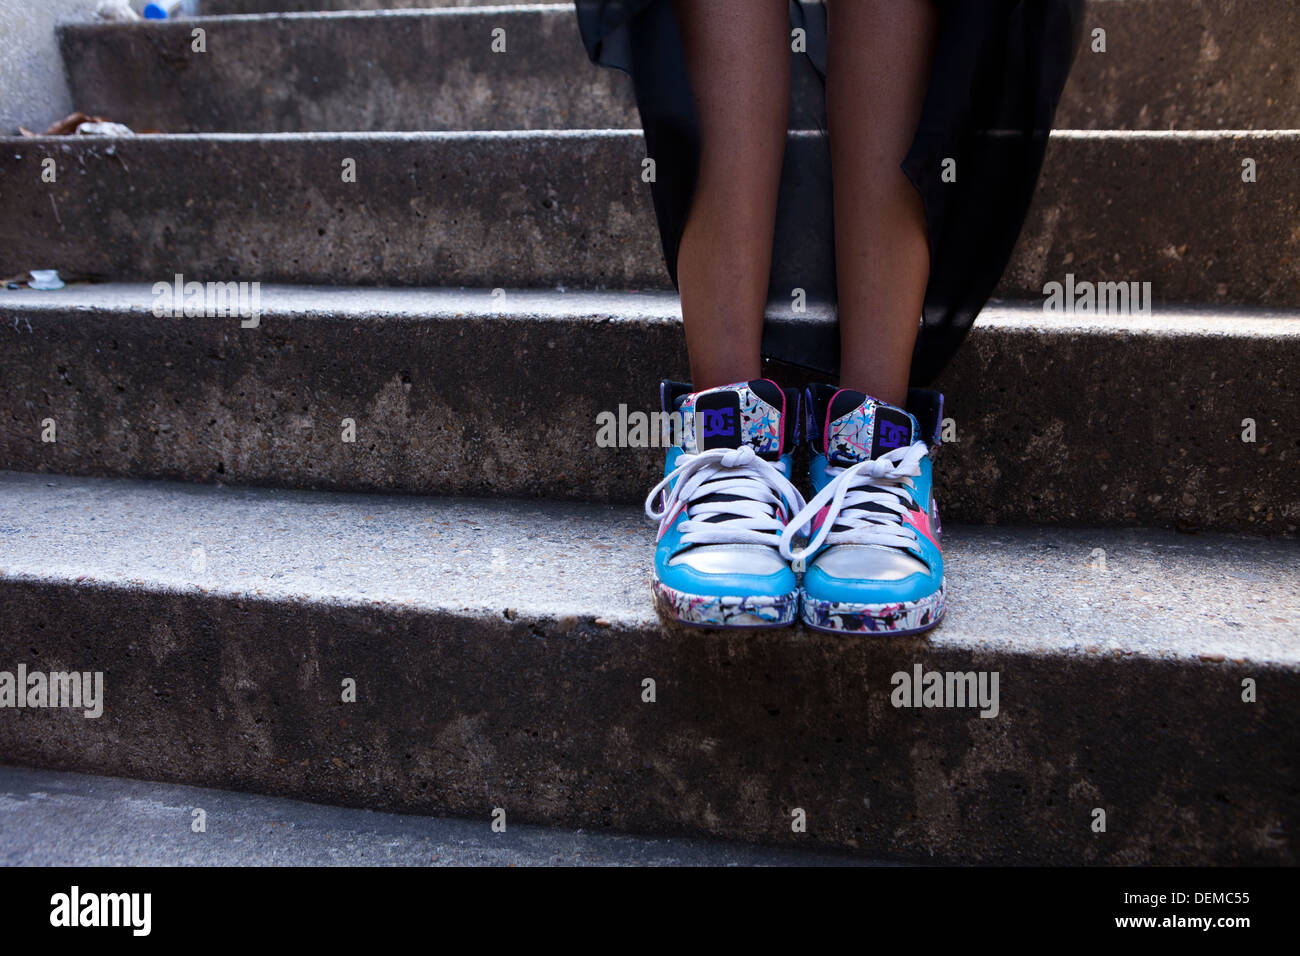 Closeup of girl wearing DG sneakers, standing on stairs - Stock Image